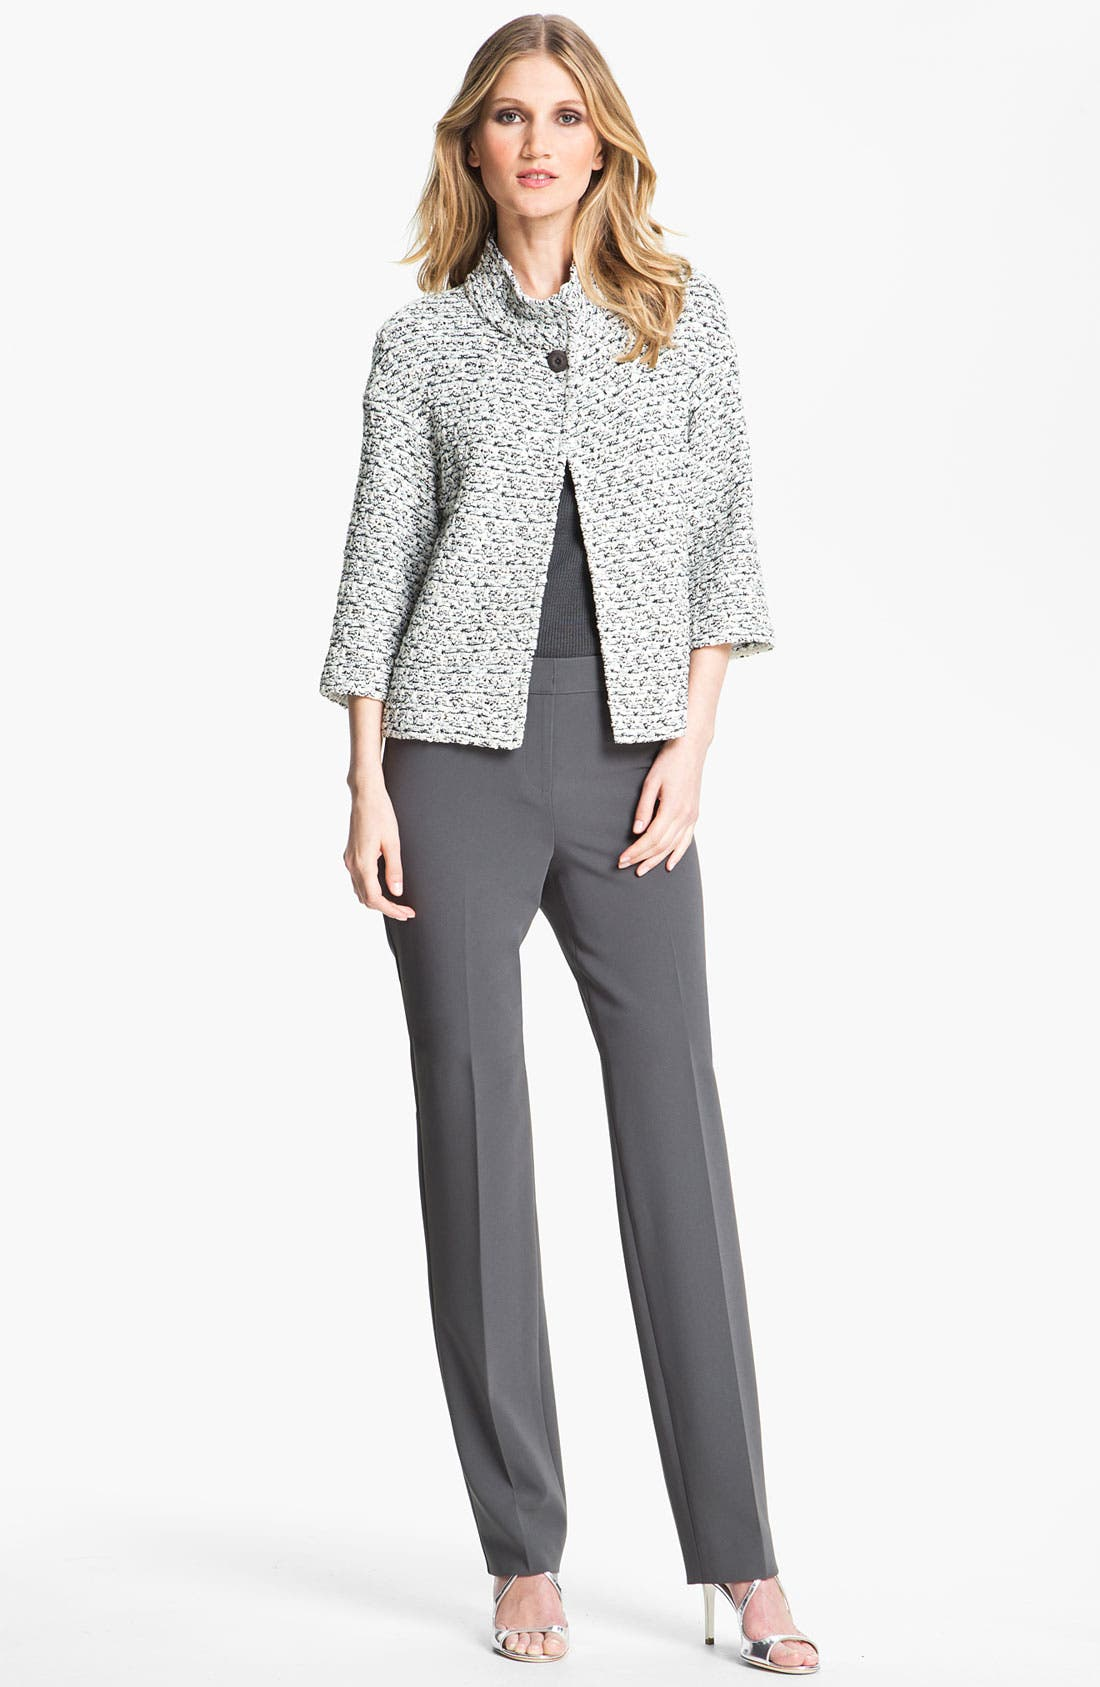 Alternate Image 1 Selected - St. John Collection Organza Tape Tweed Knit Jacket